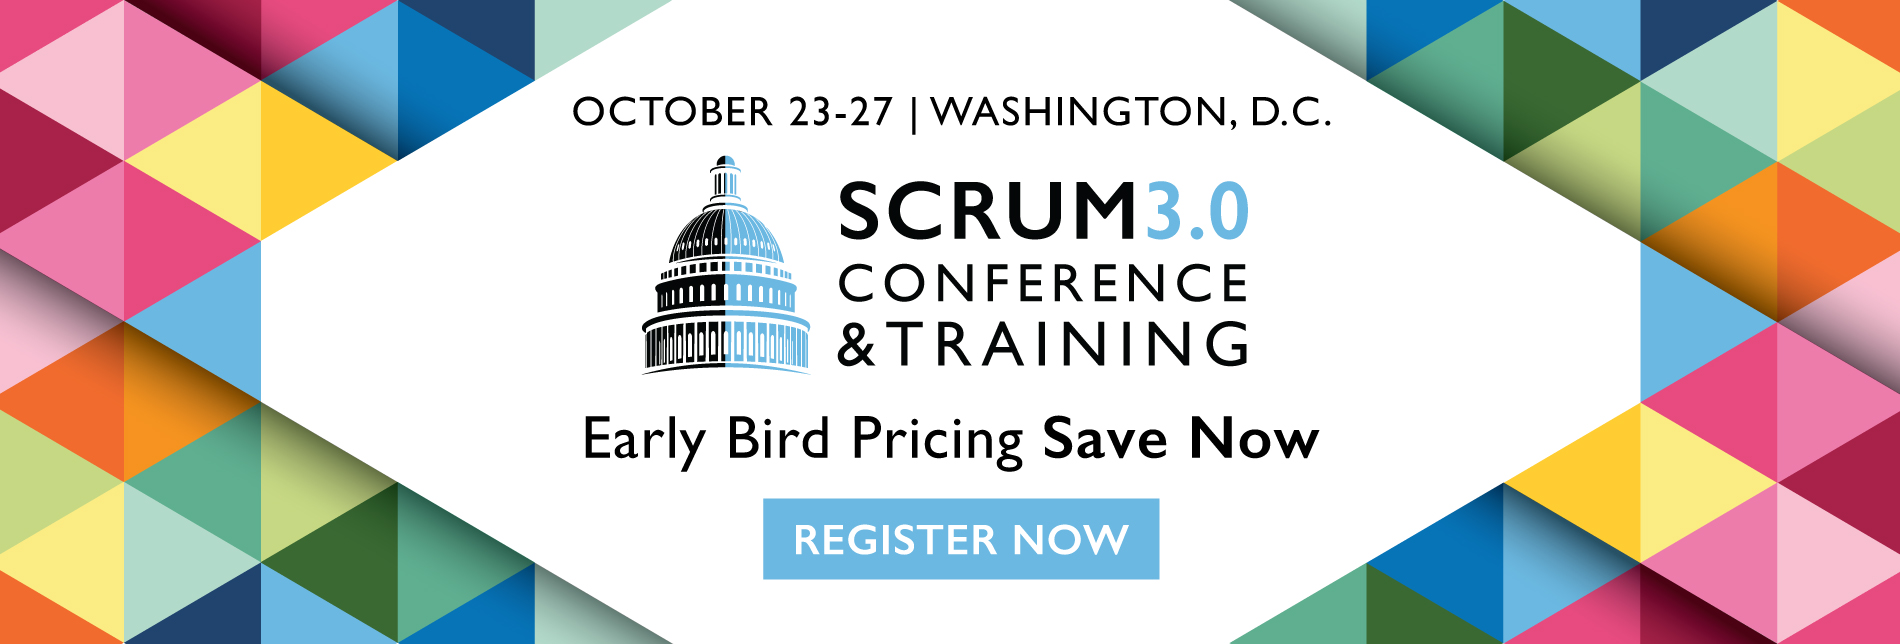 Scrum 3.0 Washington, D.C. 3Back Early Registration